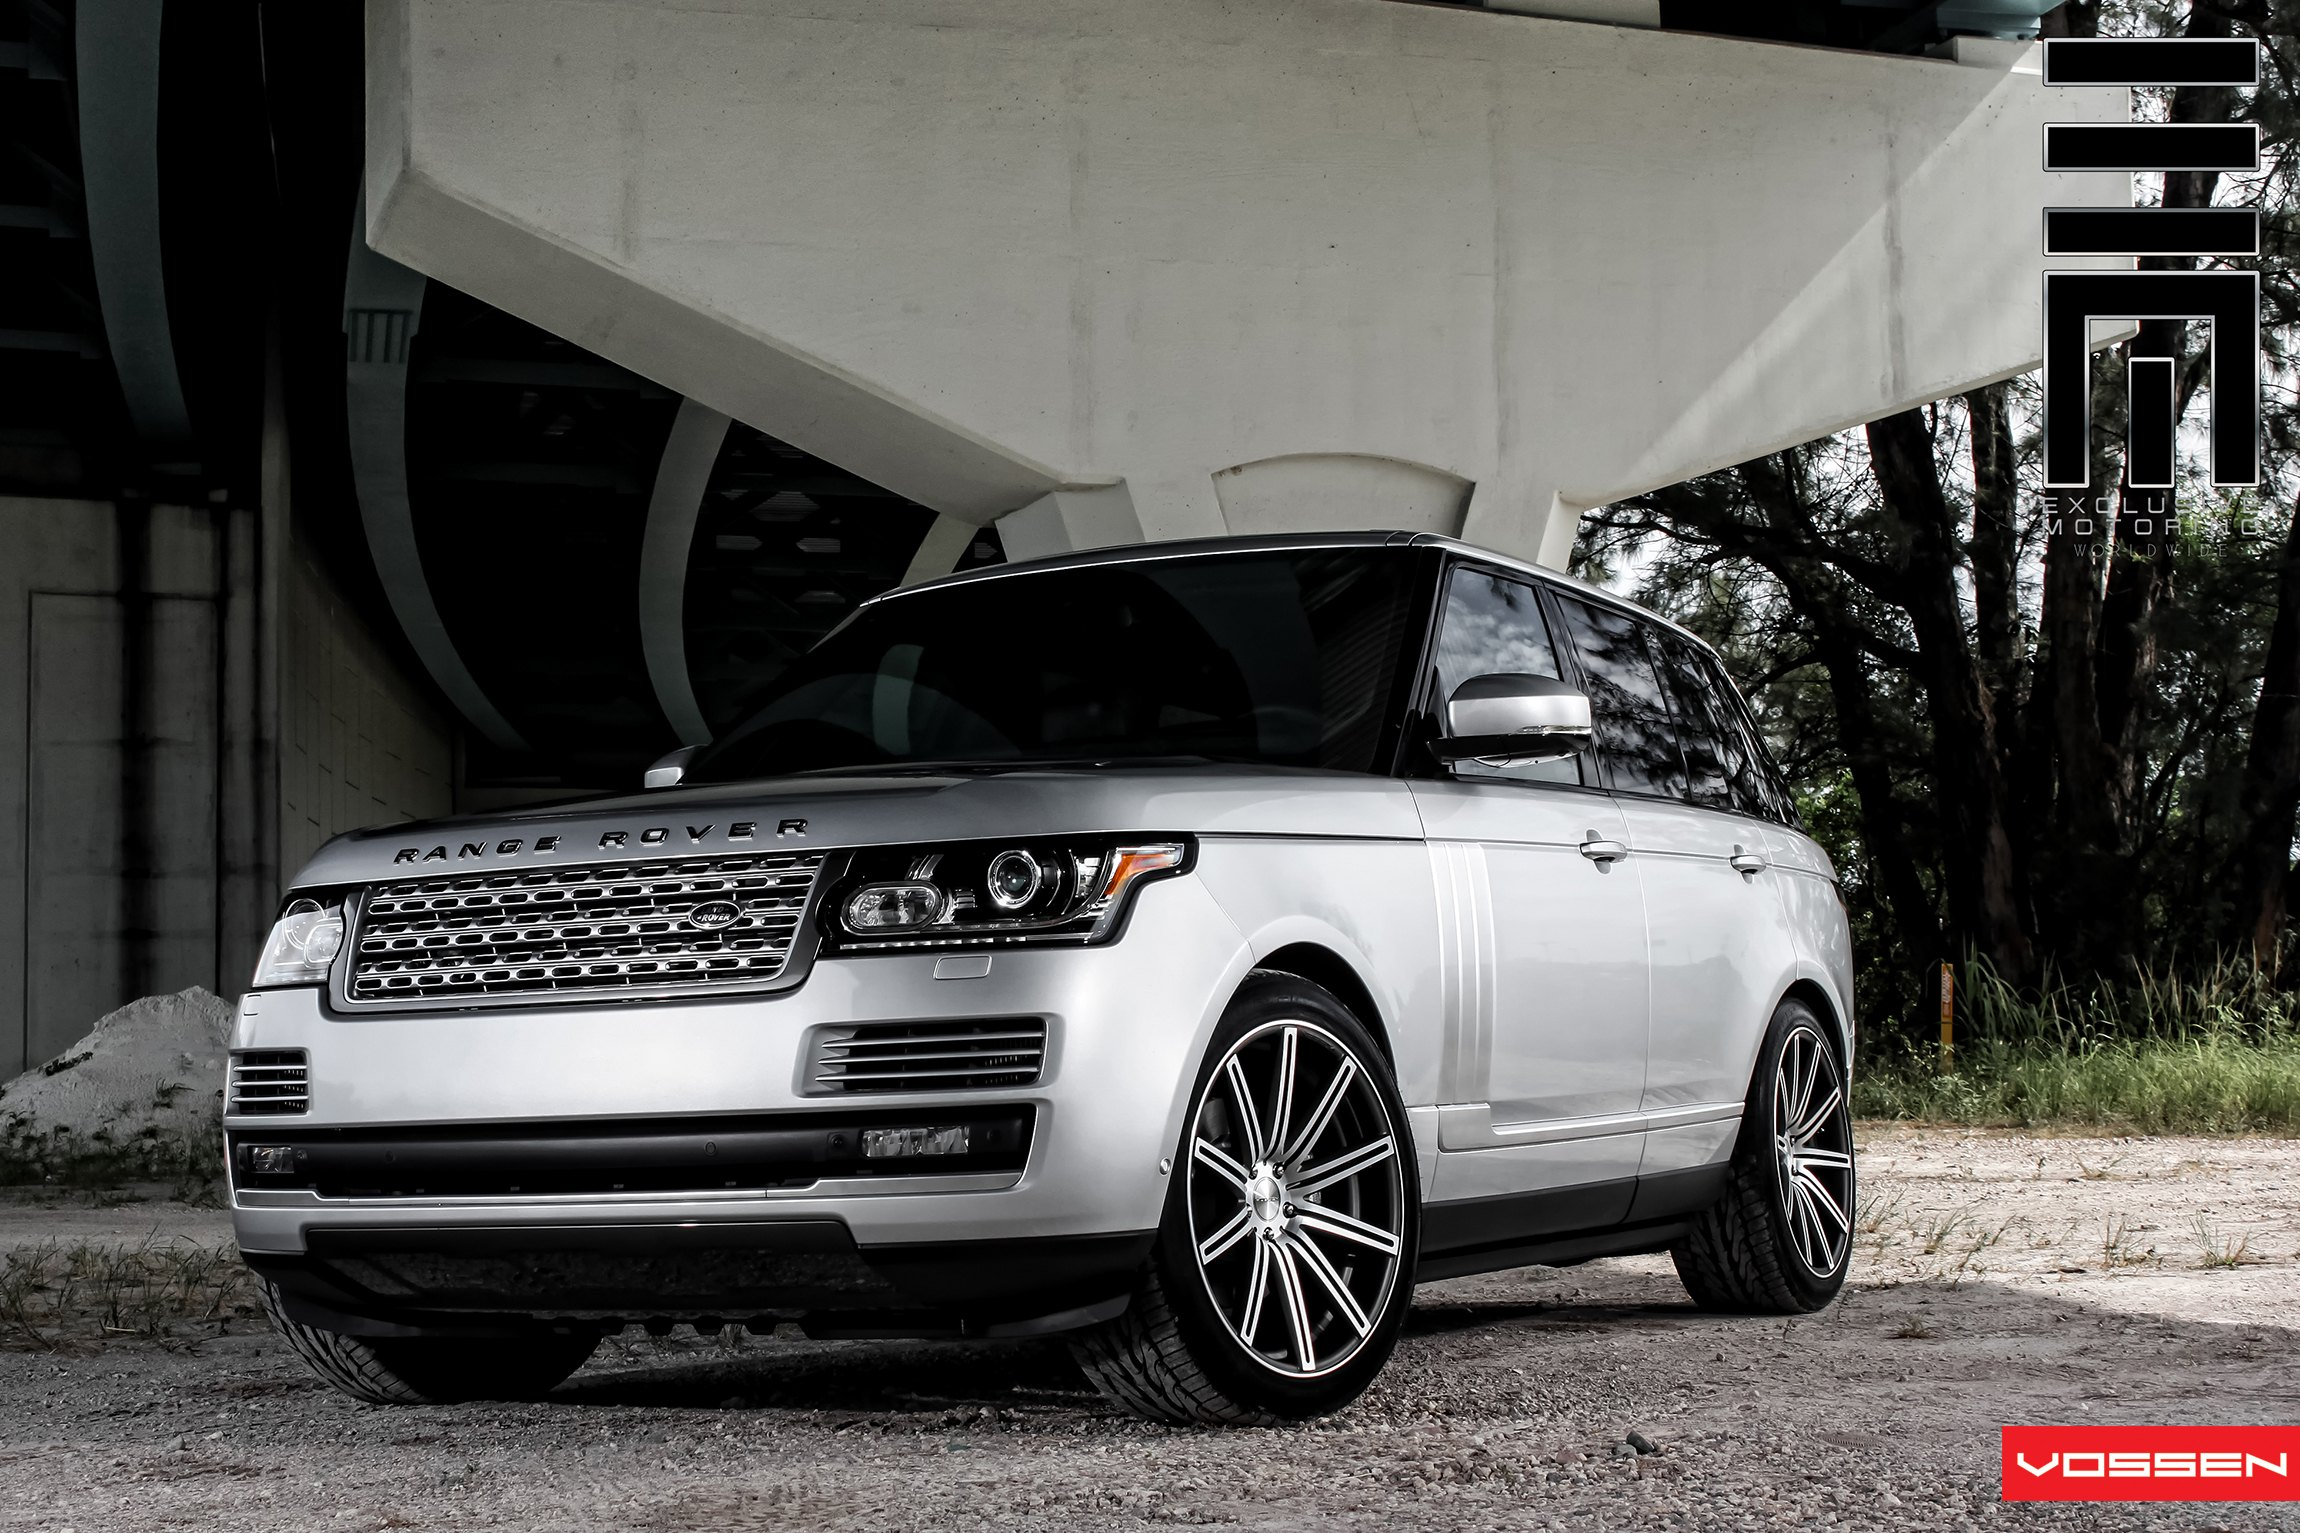 What Classy Looks Like Platinum Gray Range Rover With Vossen